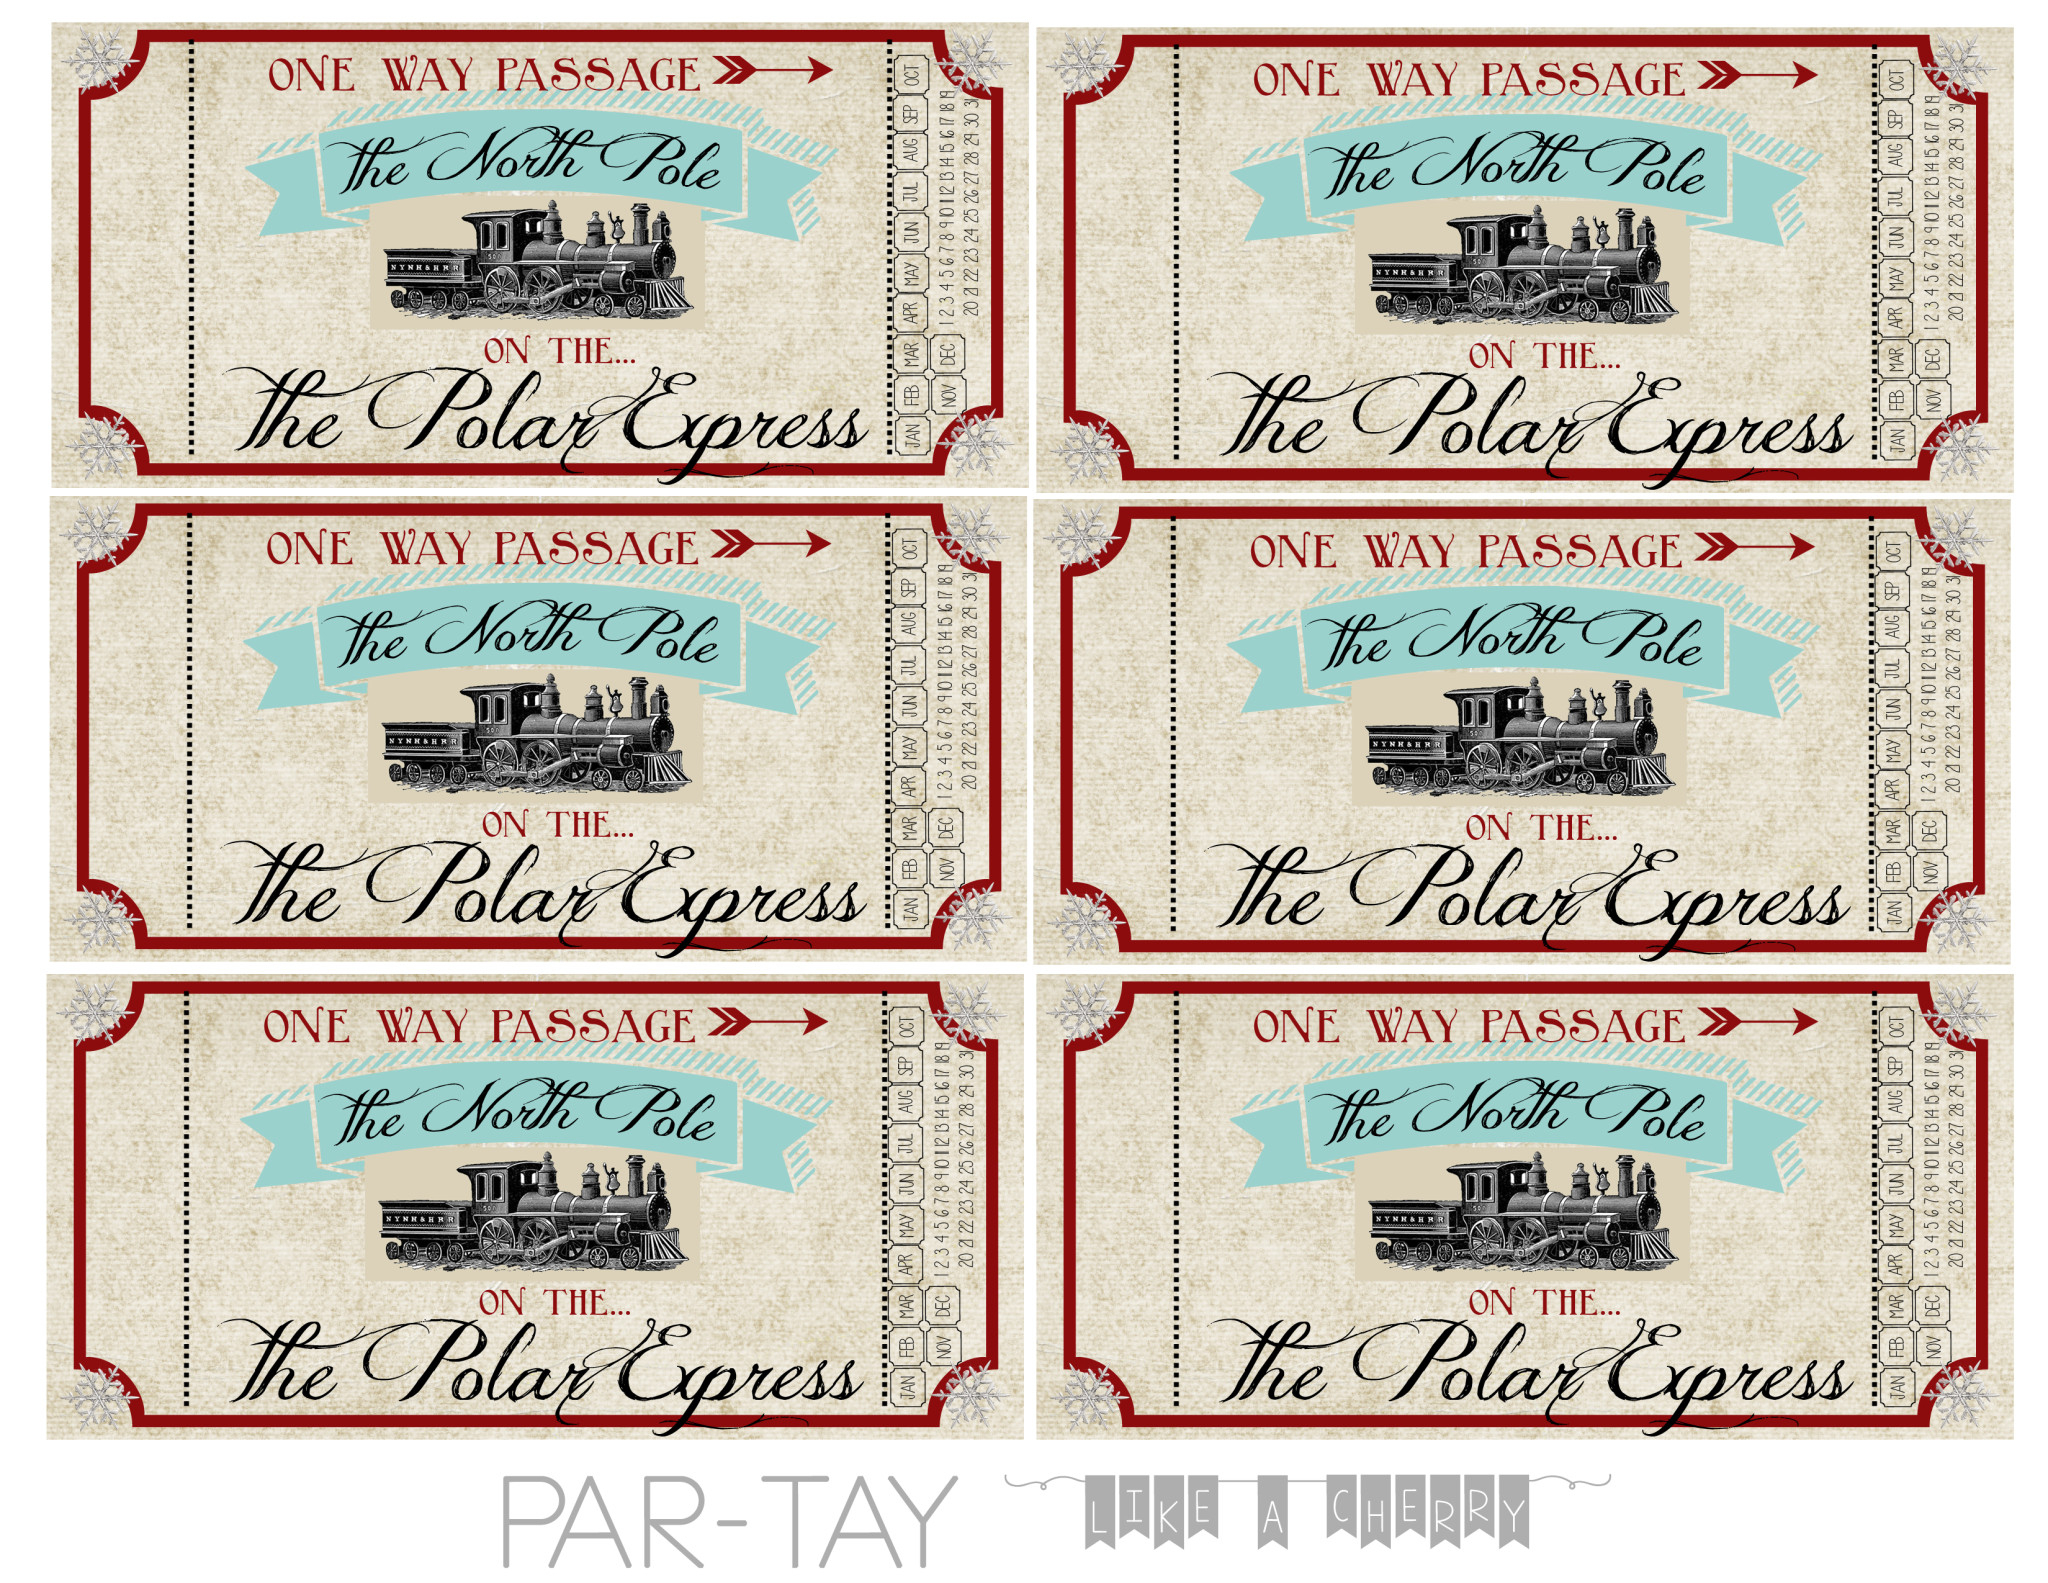 Polar Express Train Tickets Free Printable - Party Like A Cherry - Free Printable Train Pictures